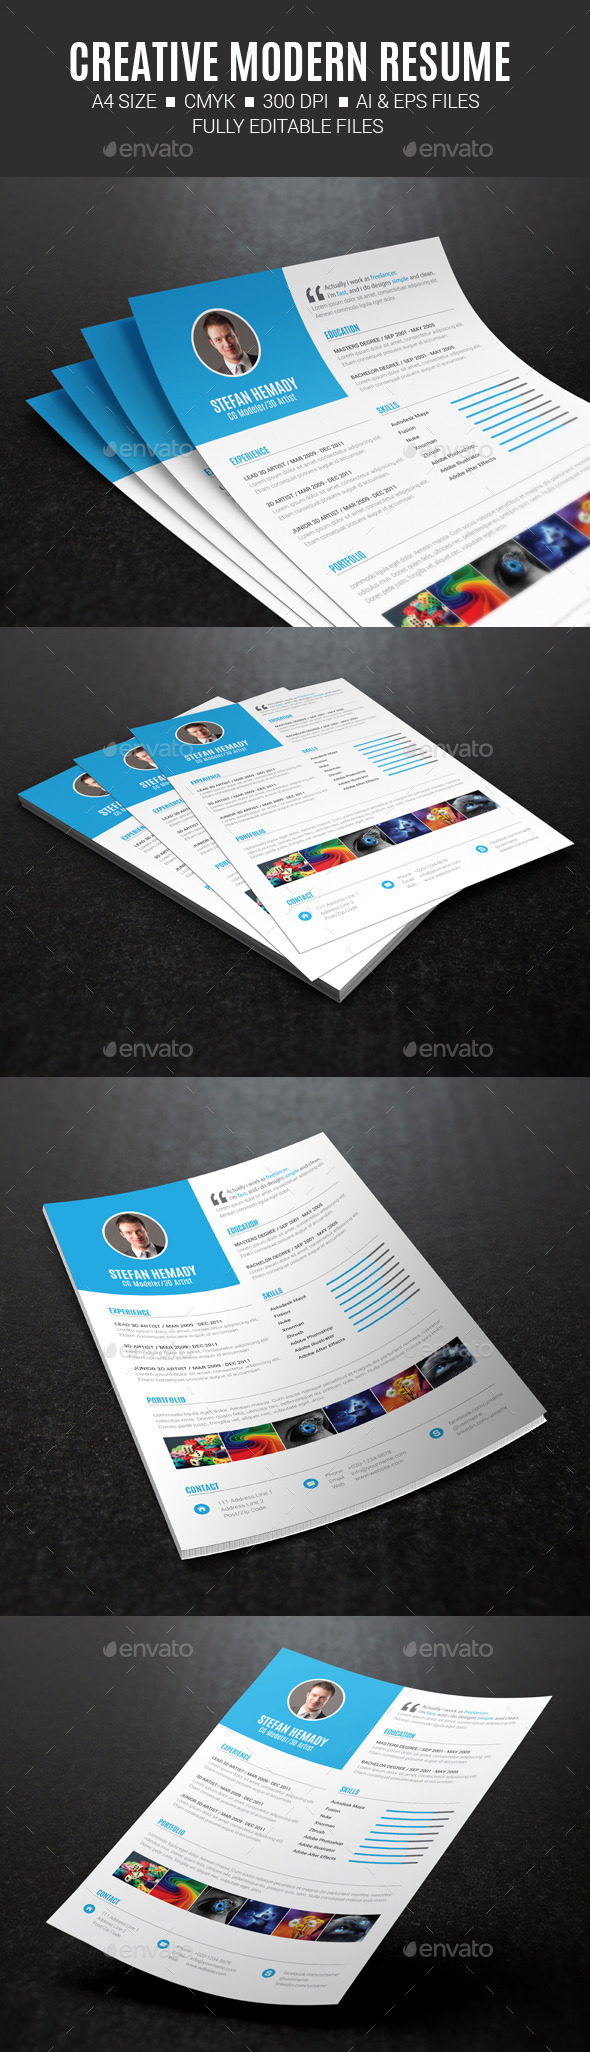 GraphicRiver Creative Modern Resume 10469448